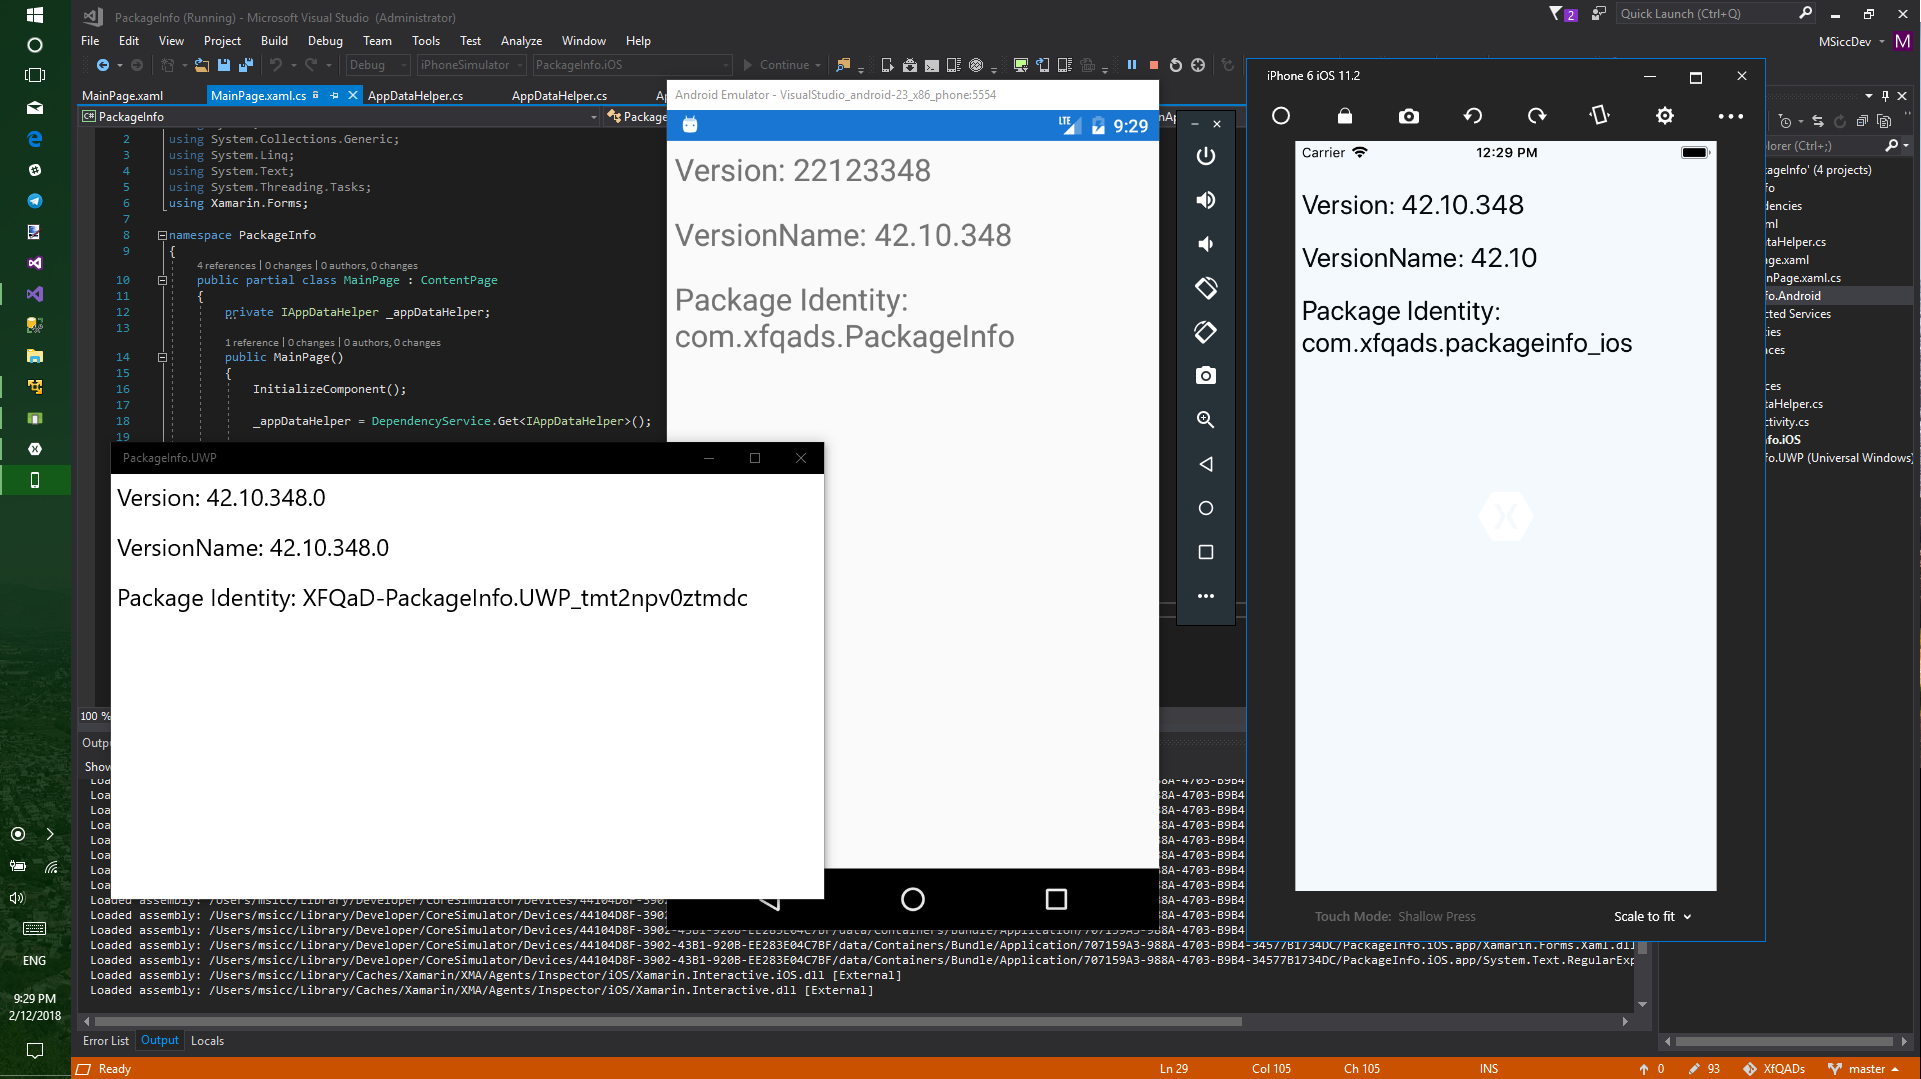 #XfQaD: read package identity and version from platform project with Xamarin.Forms